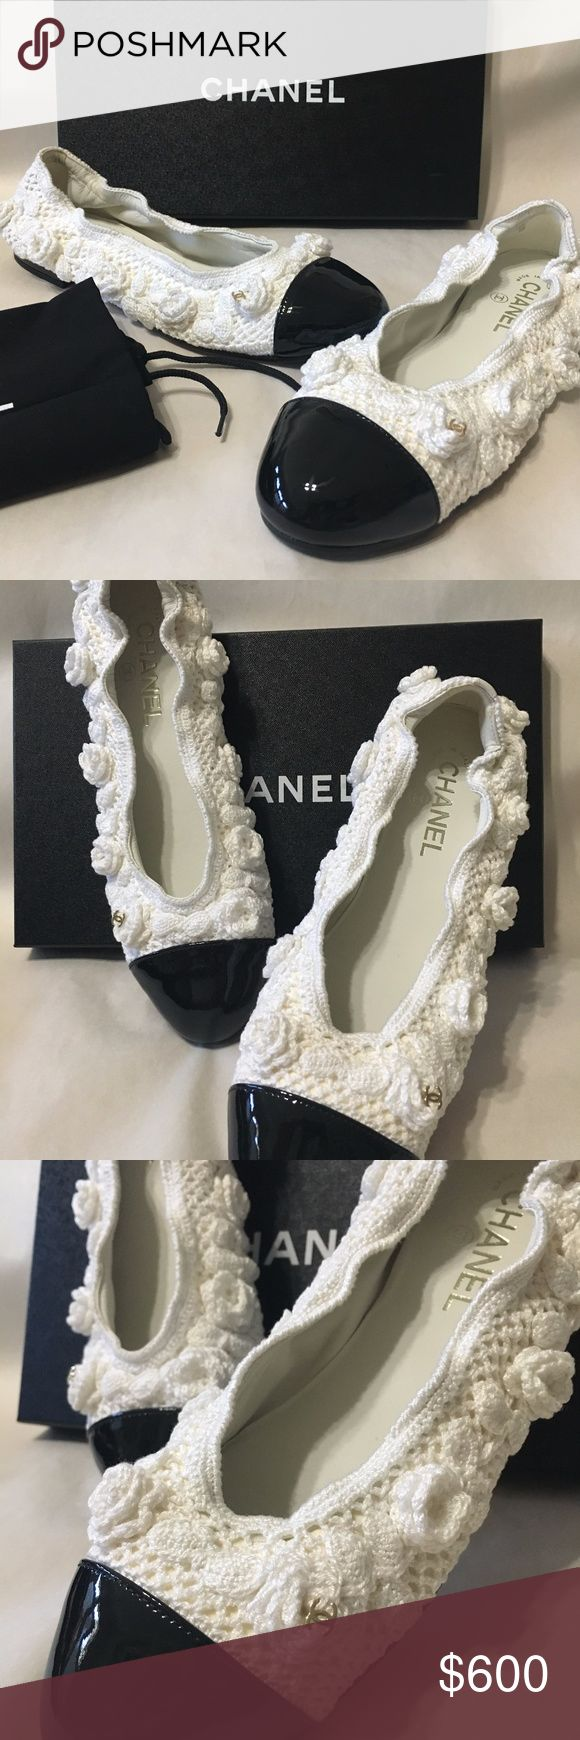 CHANEL 17C Camellia Crochet Flats 39.5 Brand New in Box  2017 Chanel Collection   17C   Size: 39.5  Comes with dustbags and box retail $875+tax  White/Black  Patent Leather/Crochet  Ballerina Flats  CC Captoe  Stretch  100% Authentic or your money back CHANEL Shoes Flats & Loafers